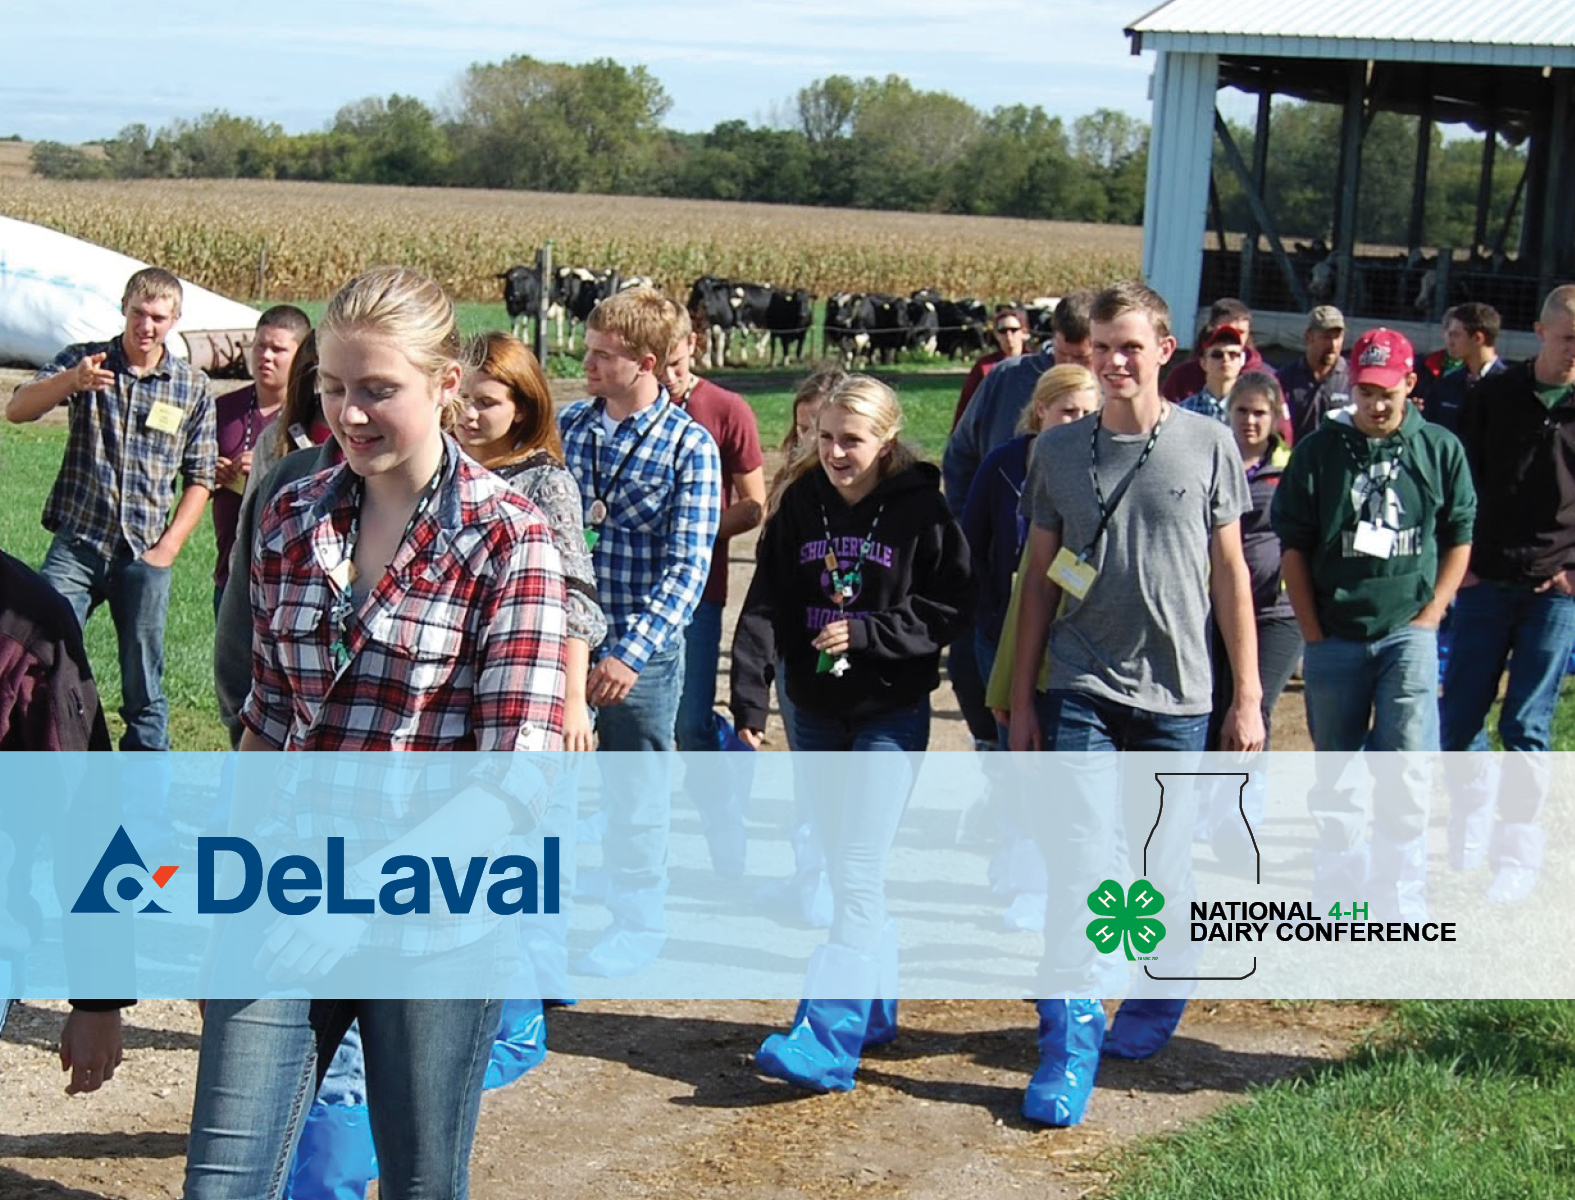 DeLaval Supports National 4-H Dairy Conference